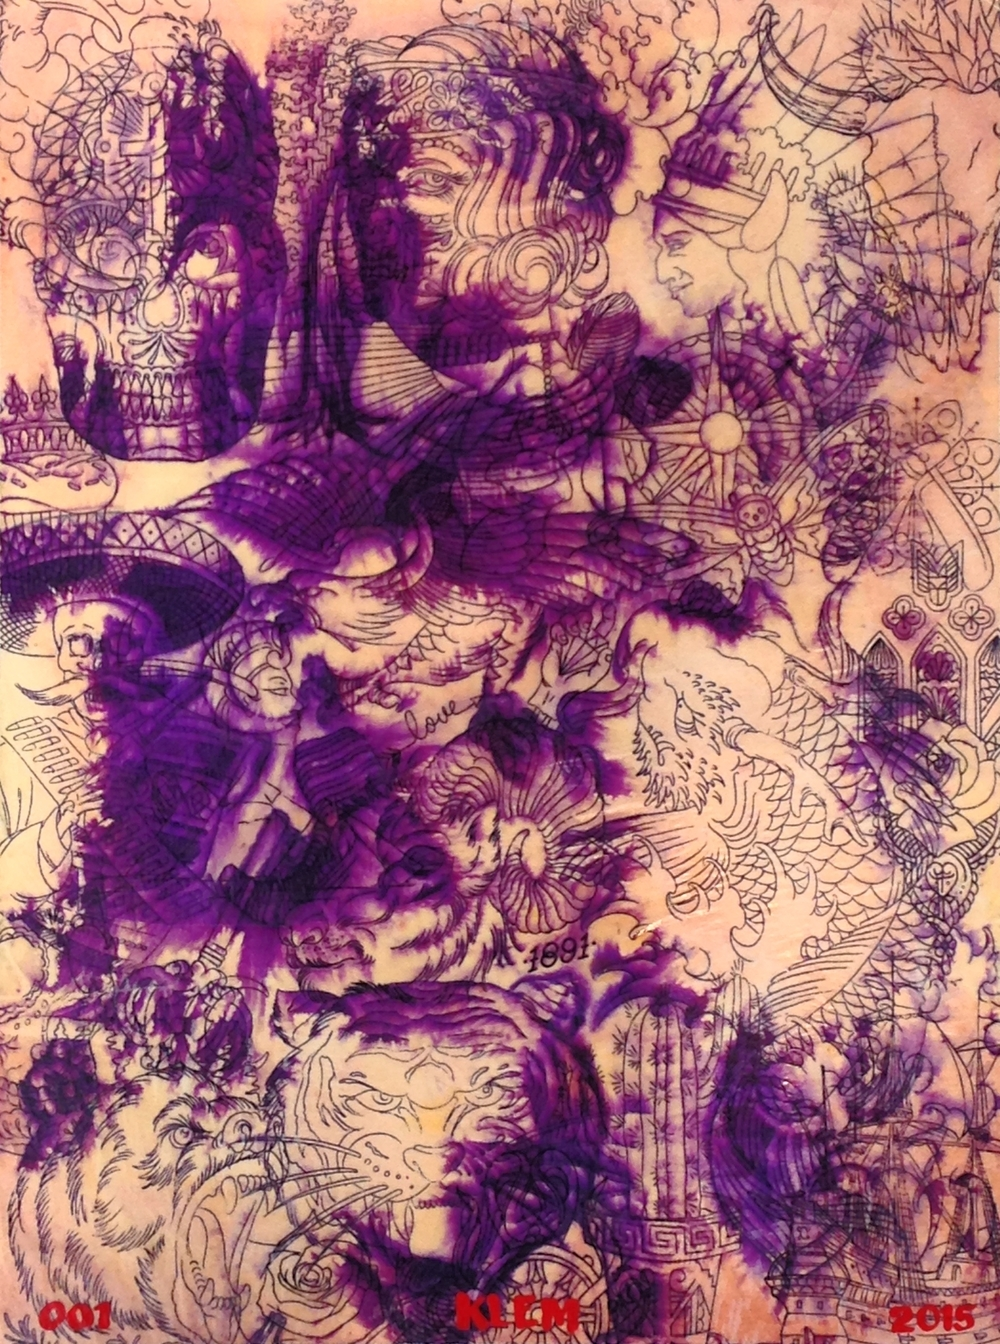 """PURPLE FINGERS 001""  18""X24"" Thermofax stencils on board   $500"